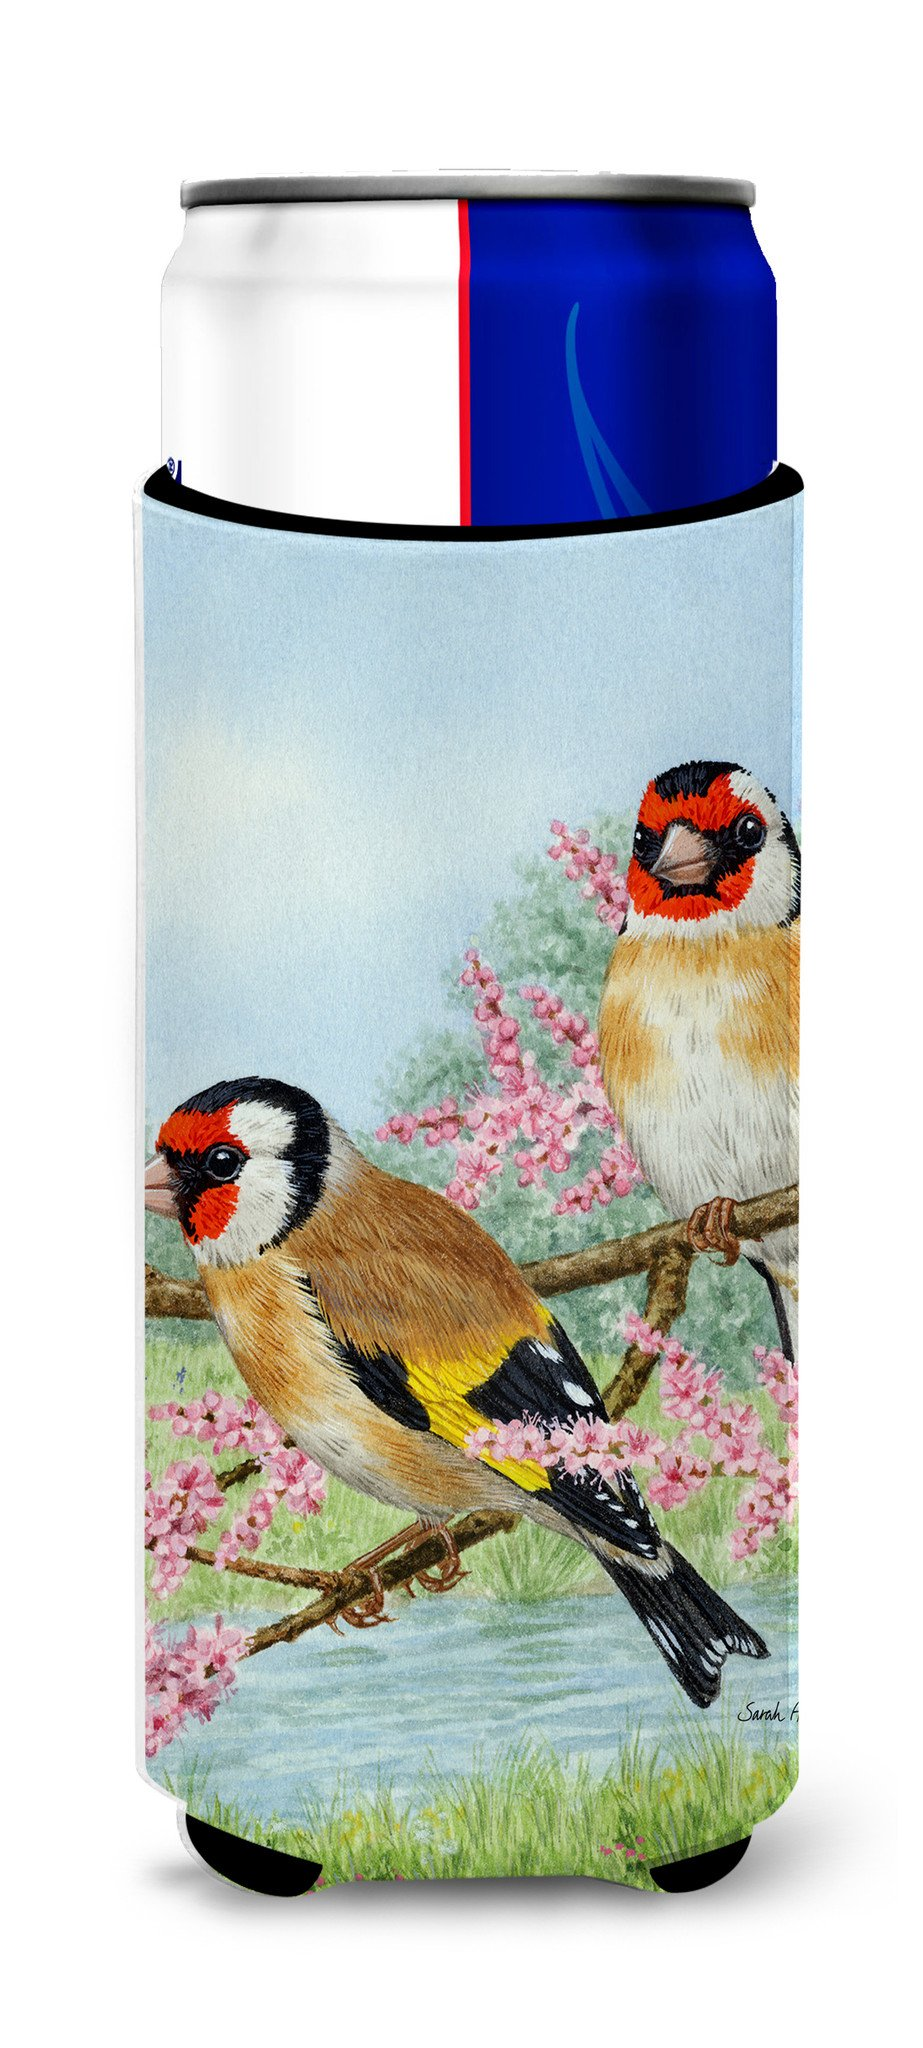 European Goldfinches Ultra Beverage Insulators for slim cans ASA2119MUK by Caroline's Treasures